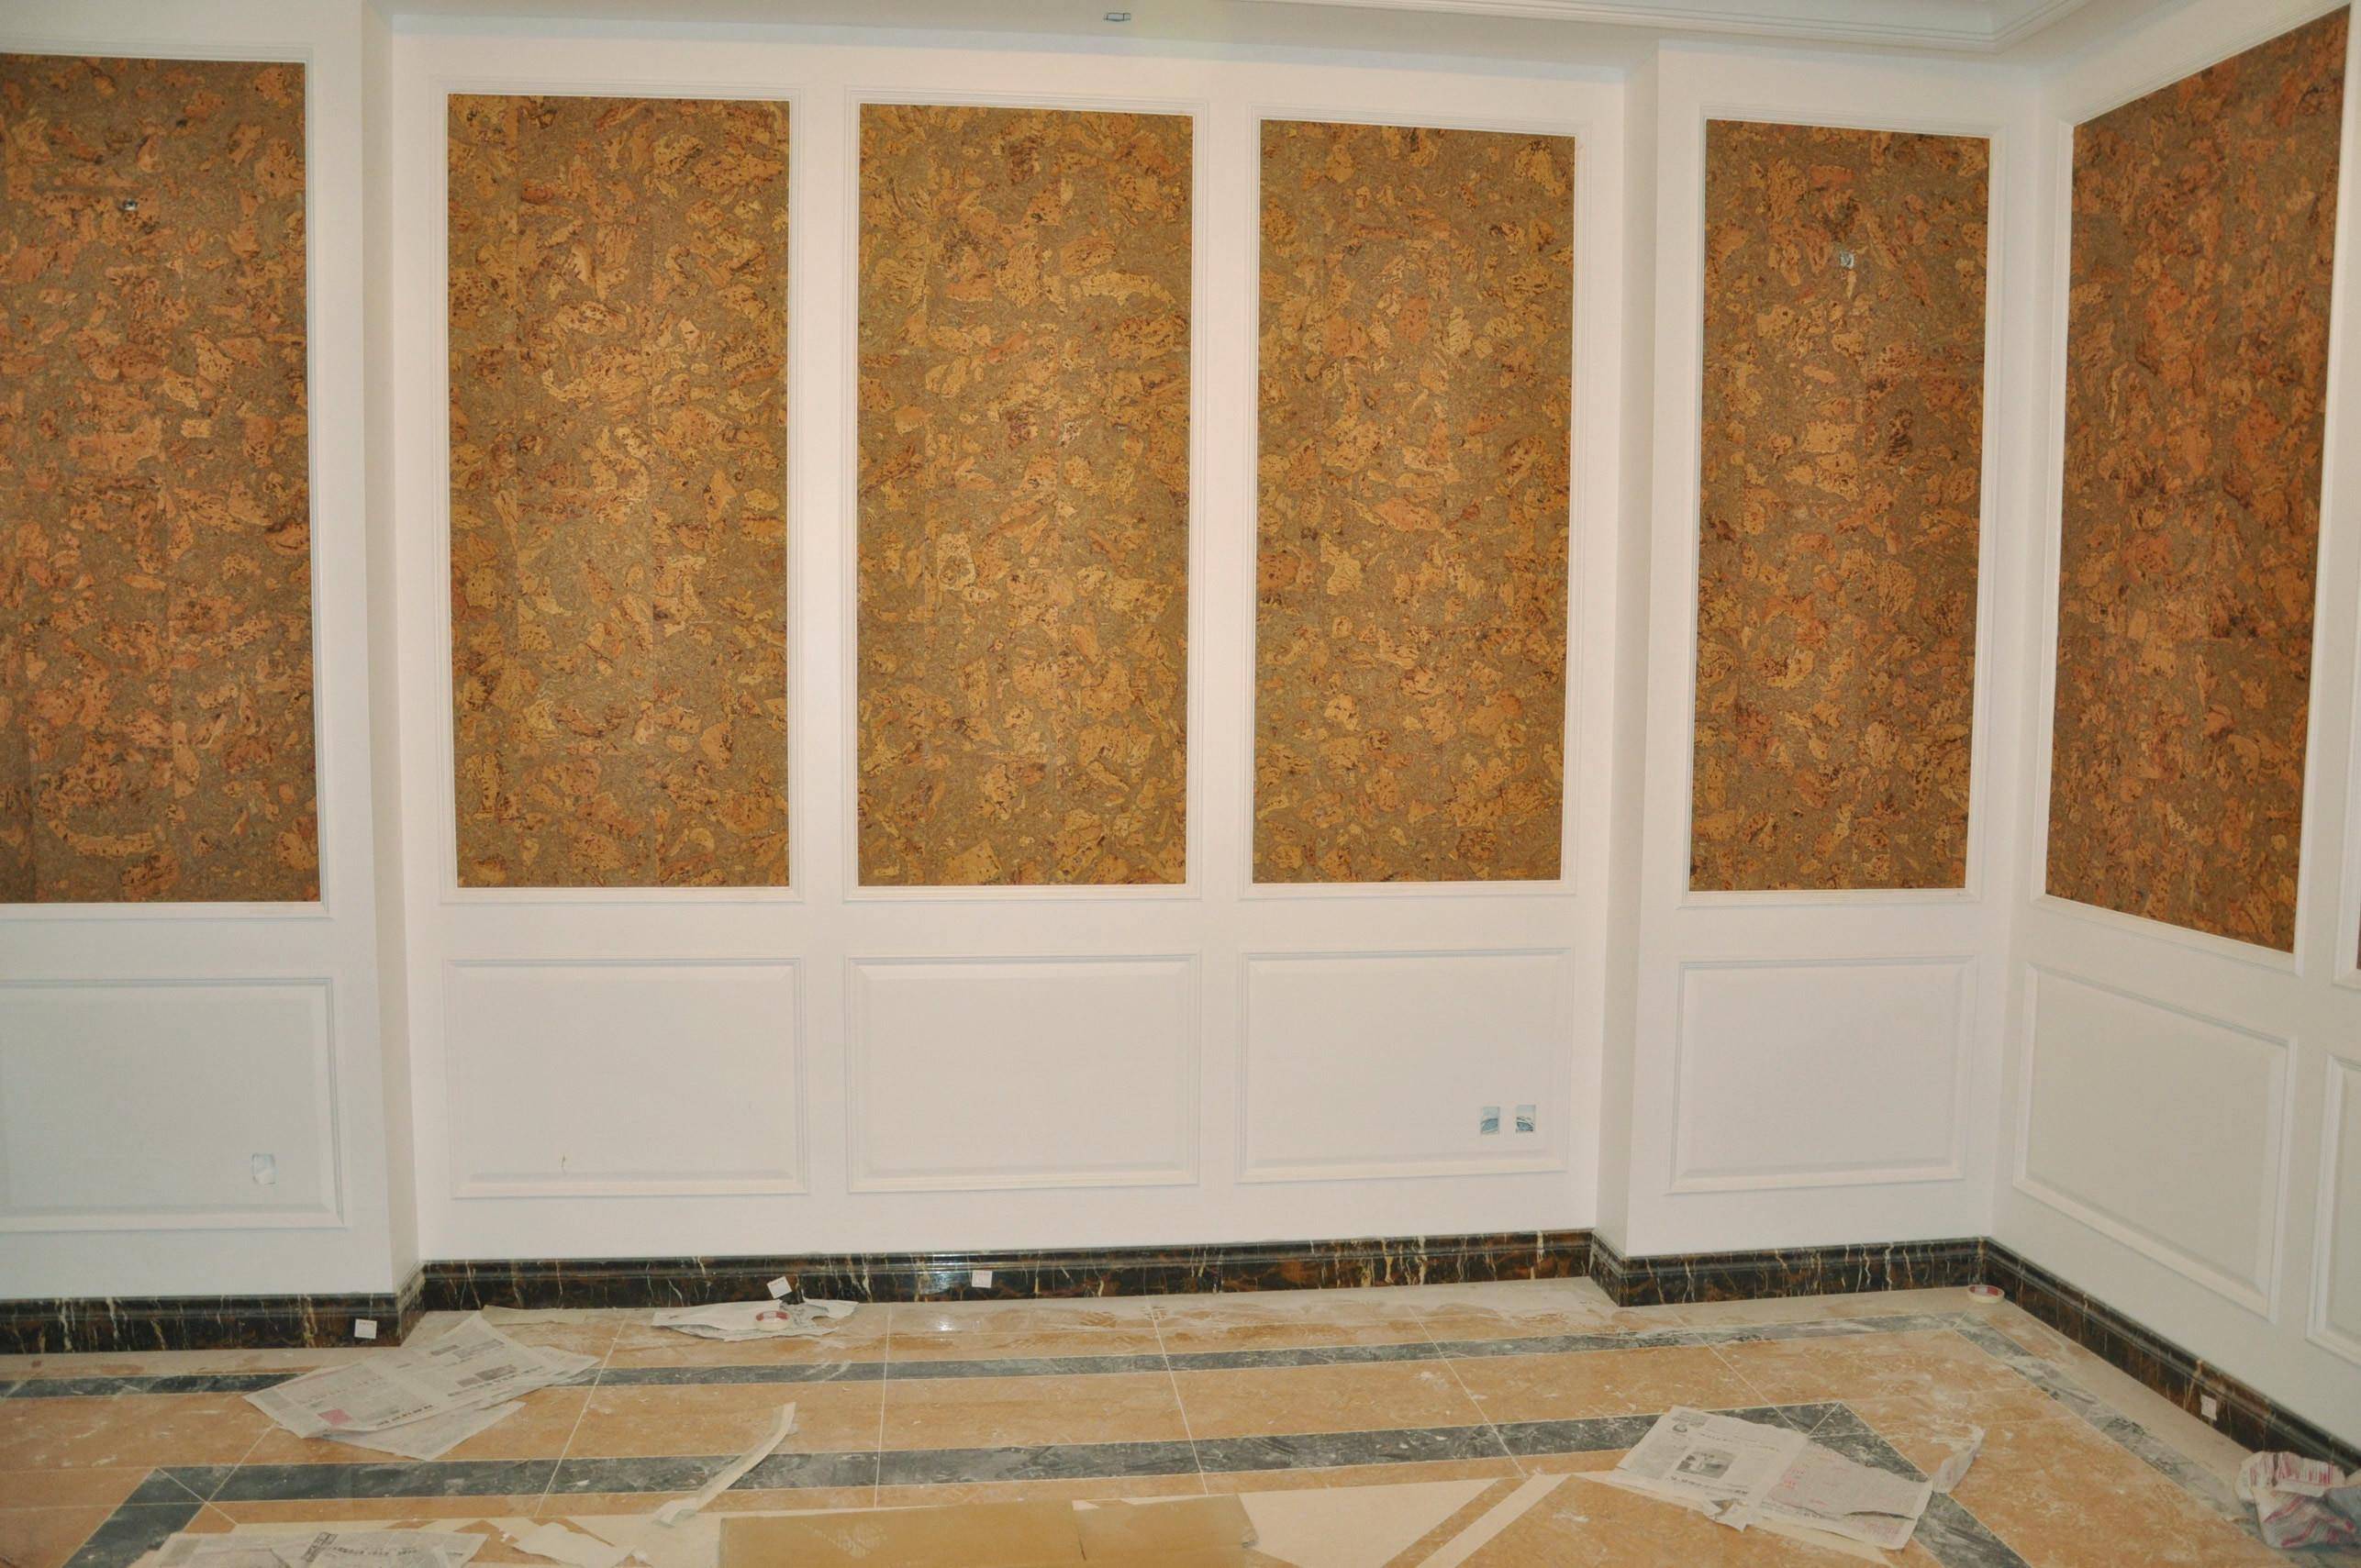 Top Cork Accent Wall Design Put Ways